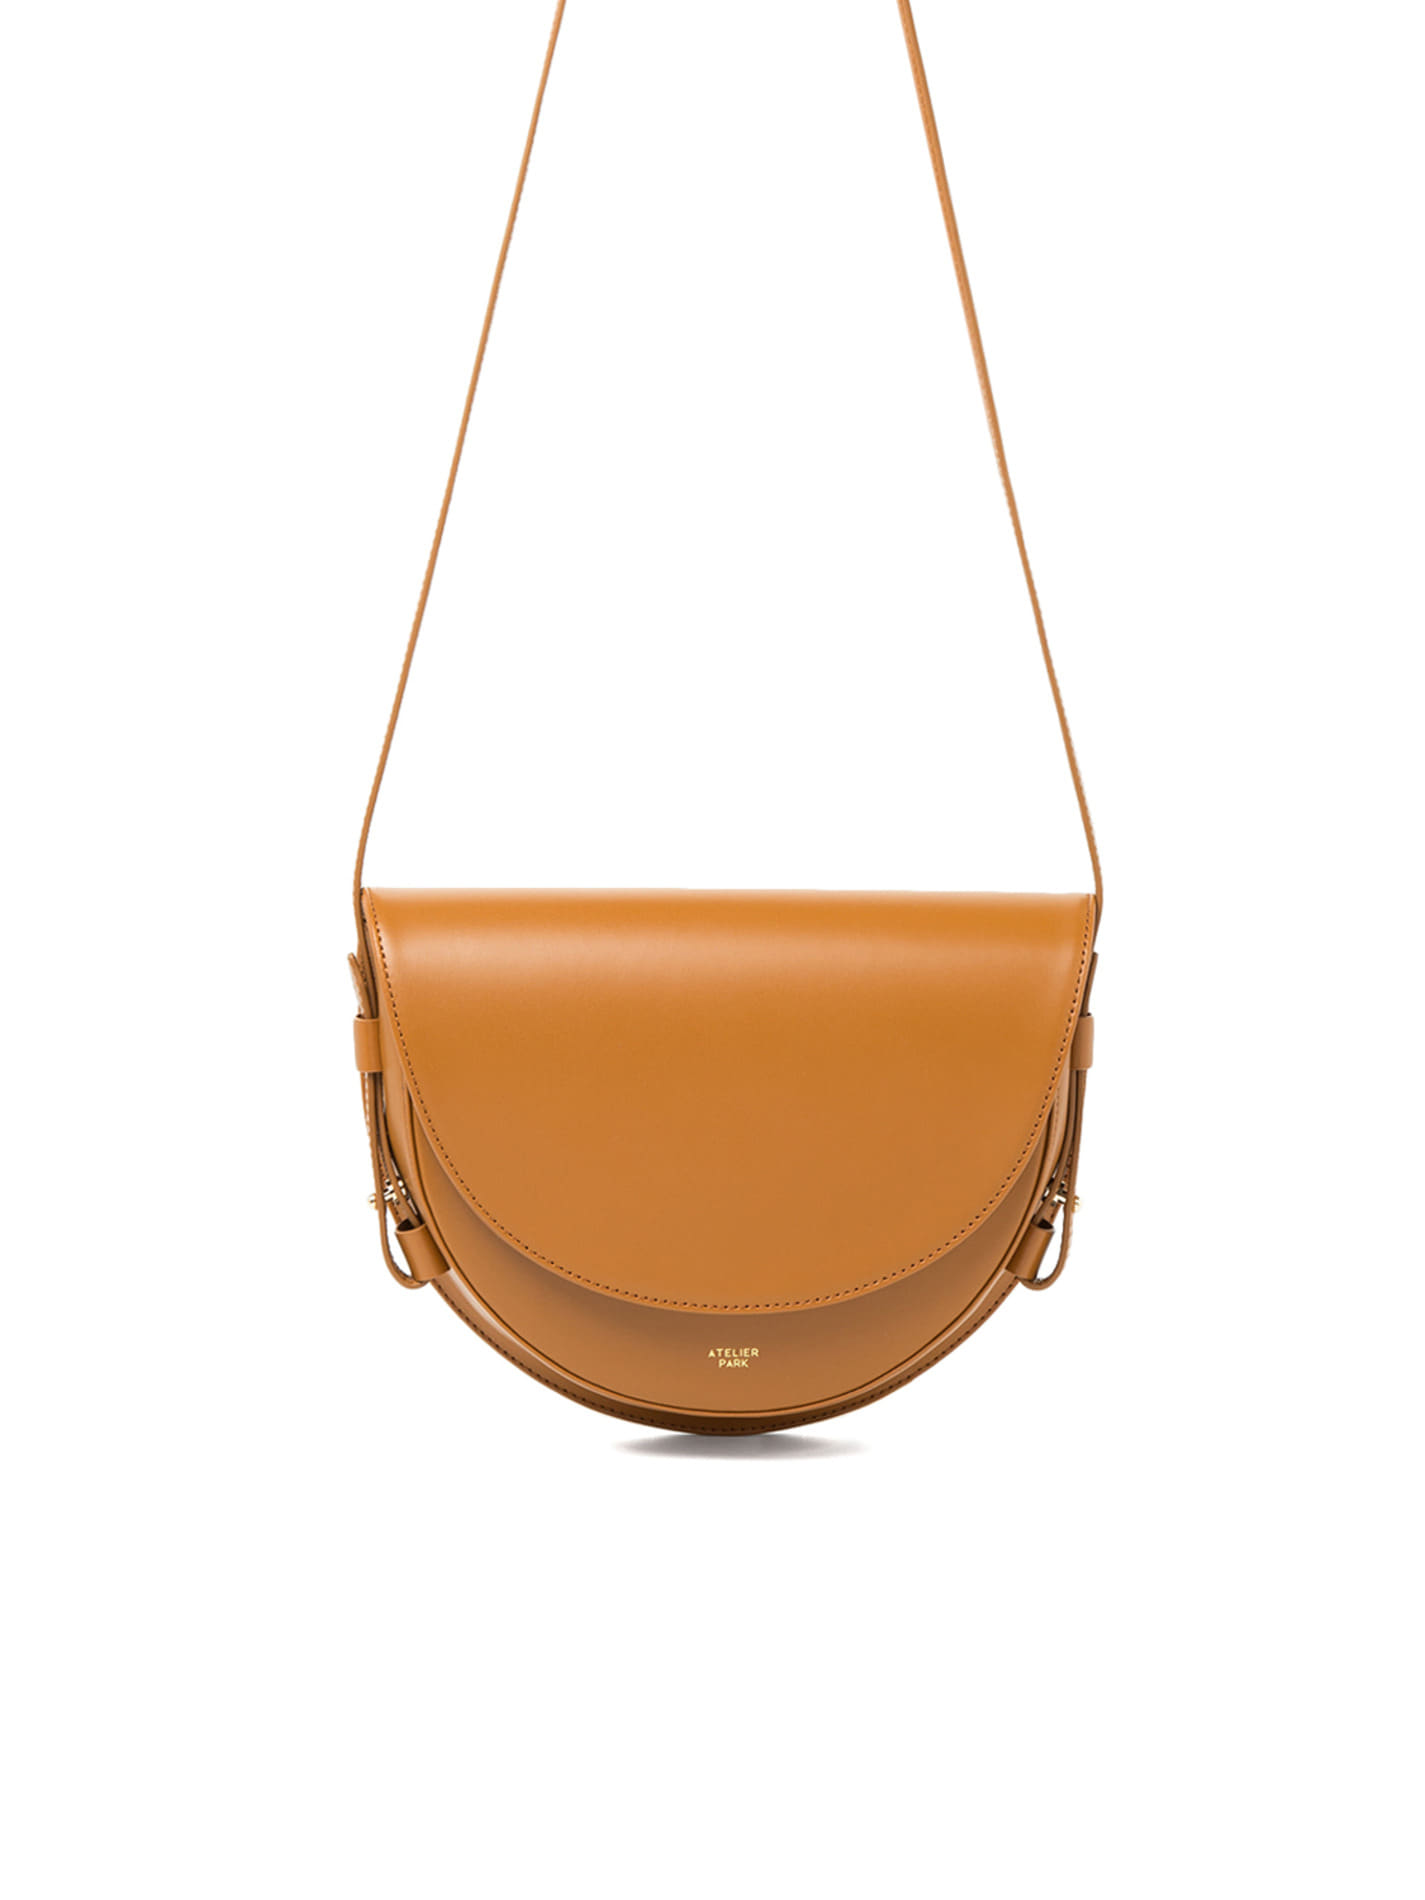 COW LEATHER LAMI BAG - CAMEL